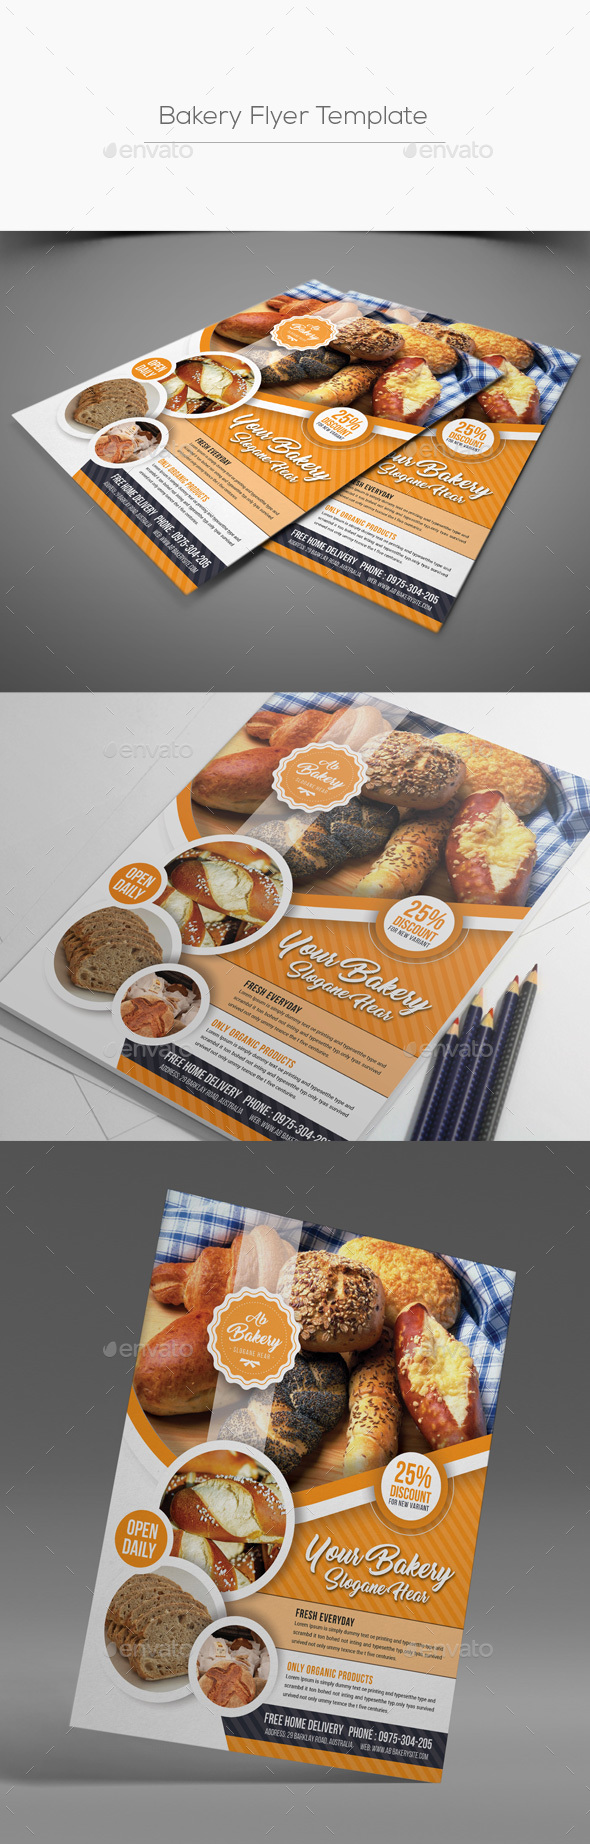 Cake Flyer Graphics Designs Templates From GraphicRiver - Bakery brochure template free